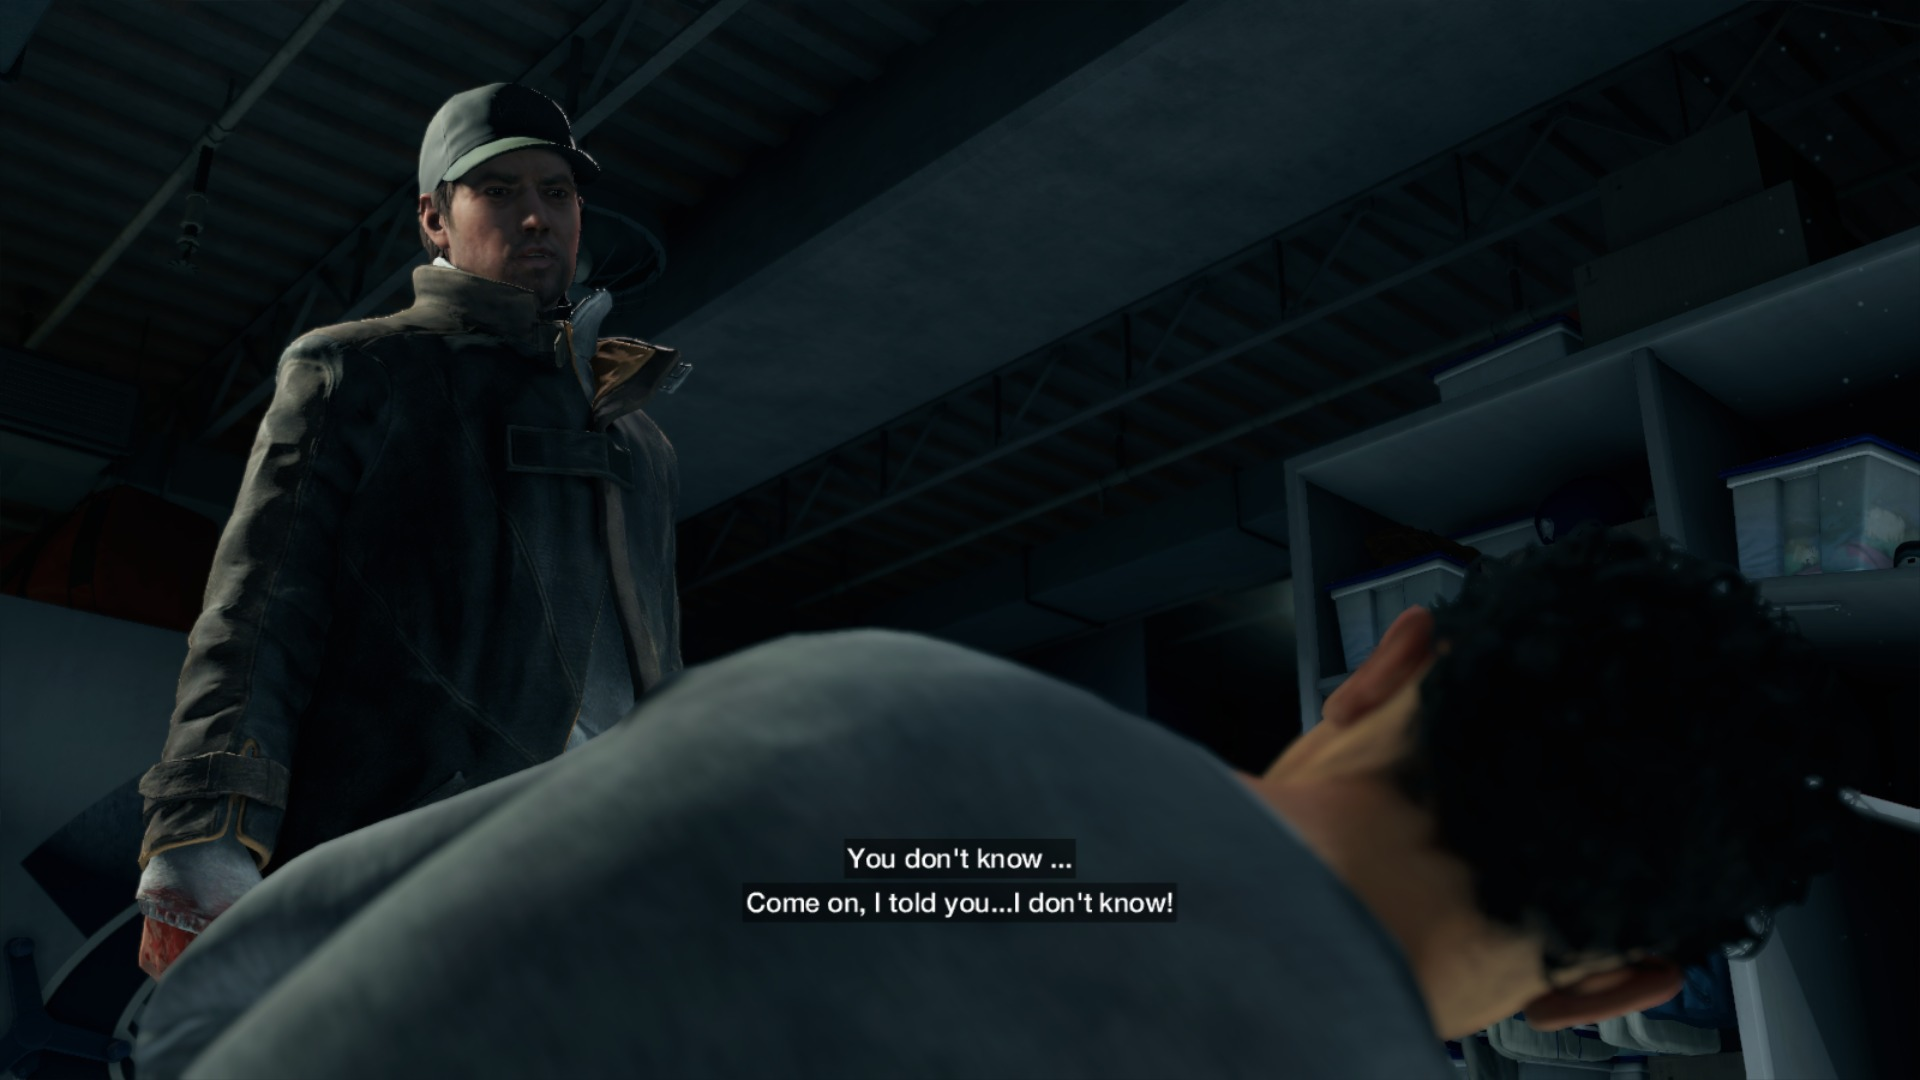 WATCH_DOGS™_20140527181126